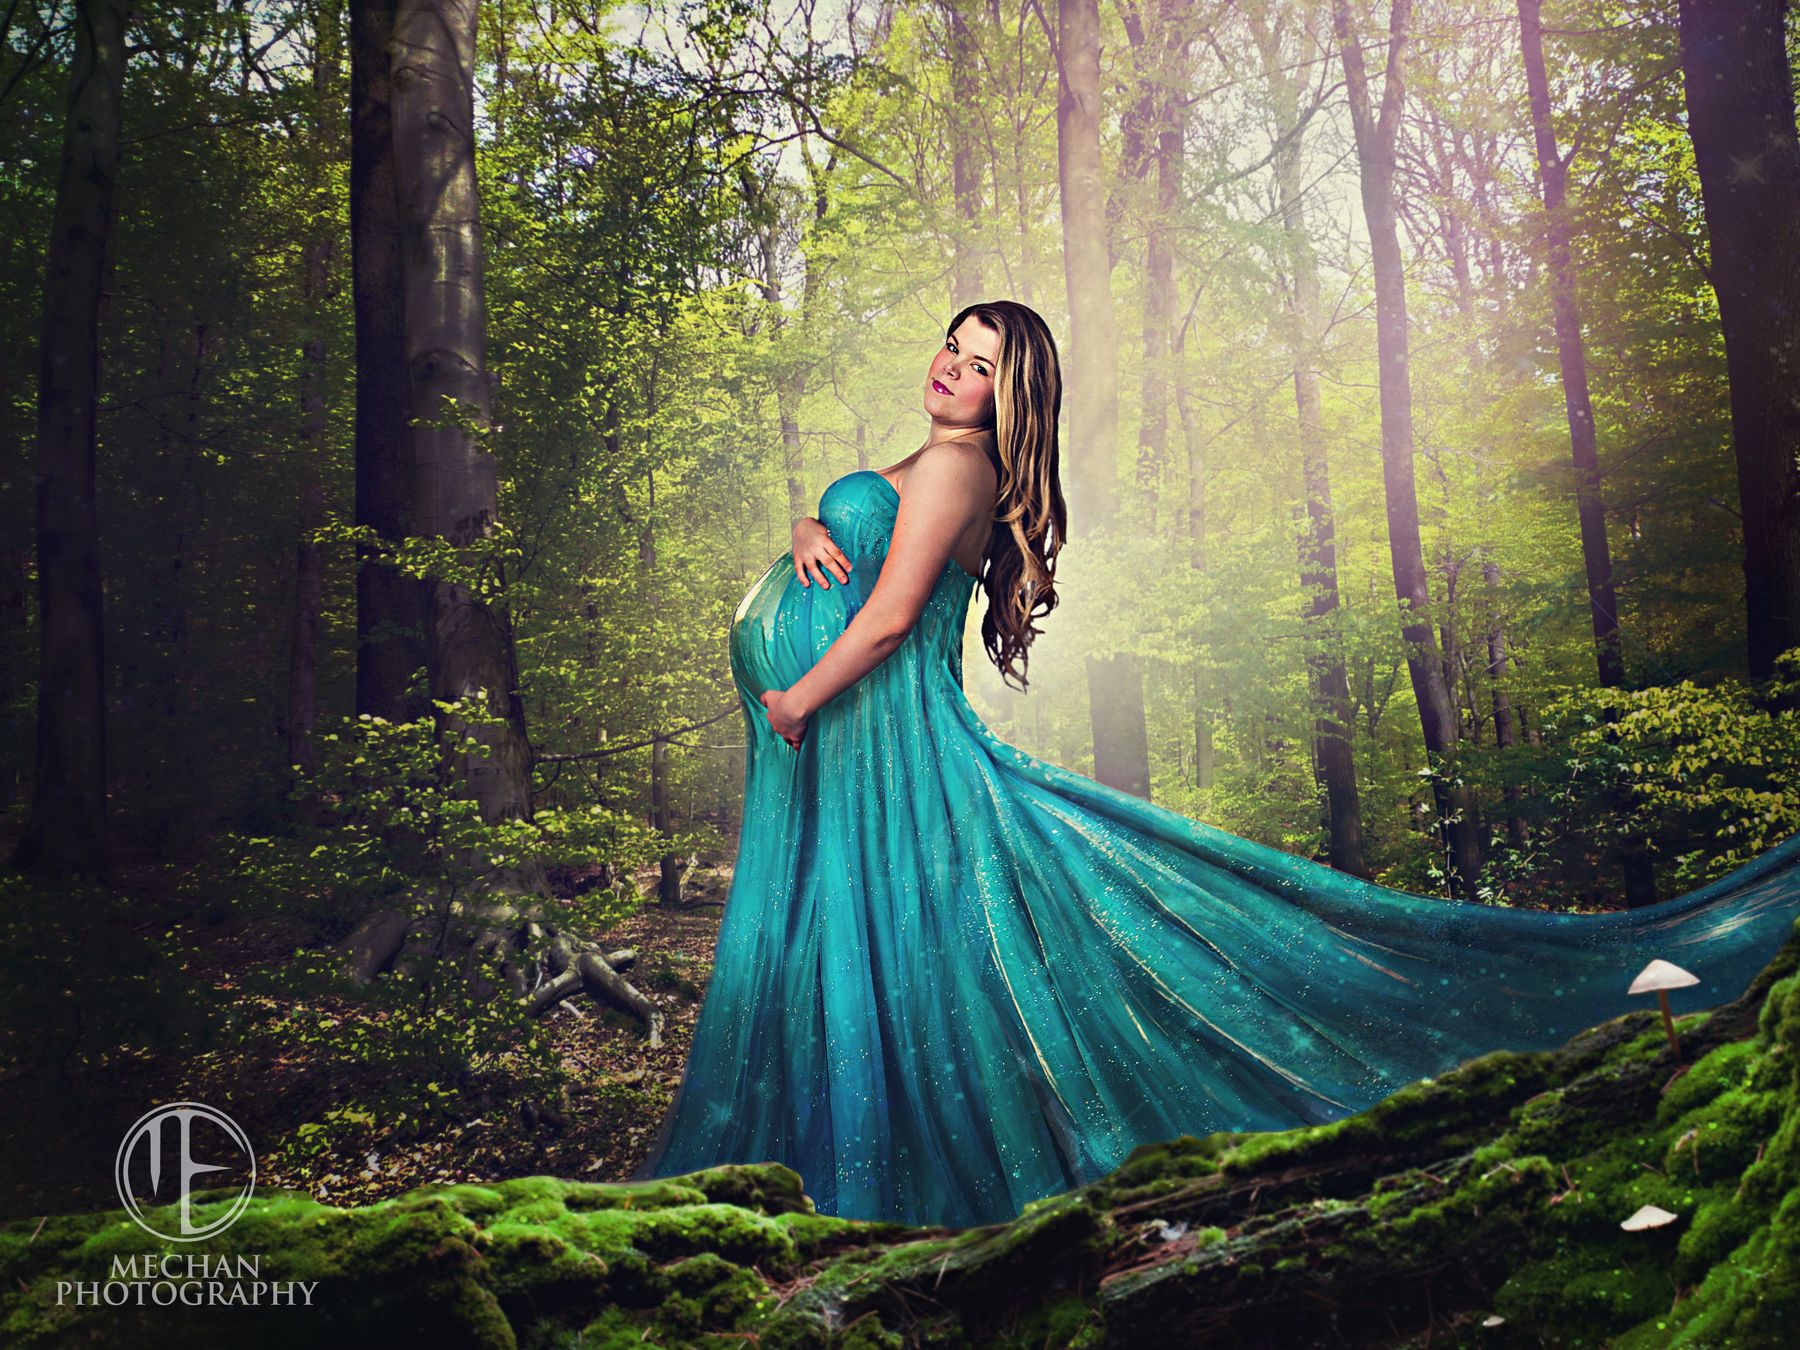 Long flowing maternity gown. 9 months. mechanphotography.com | Art ...